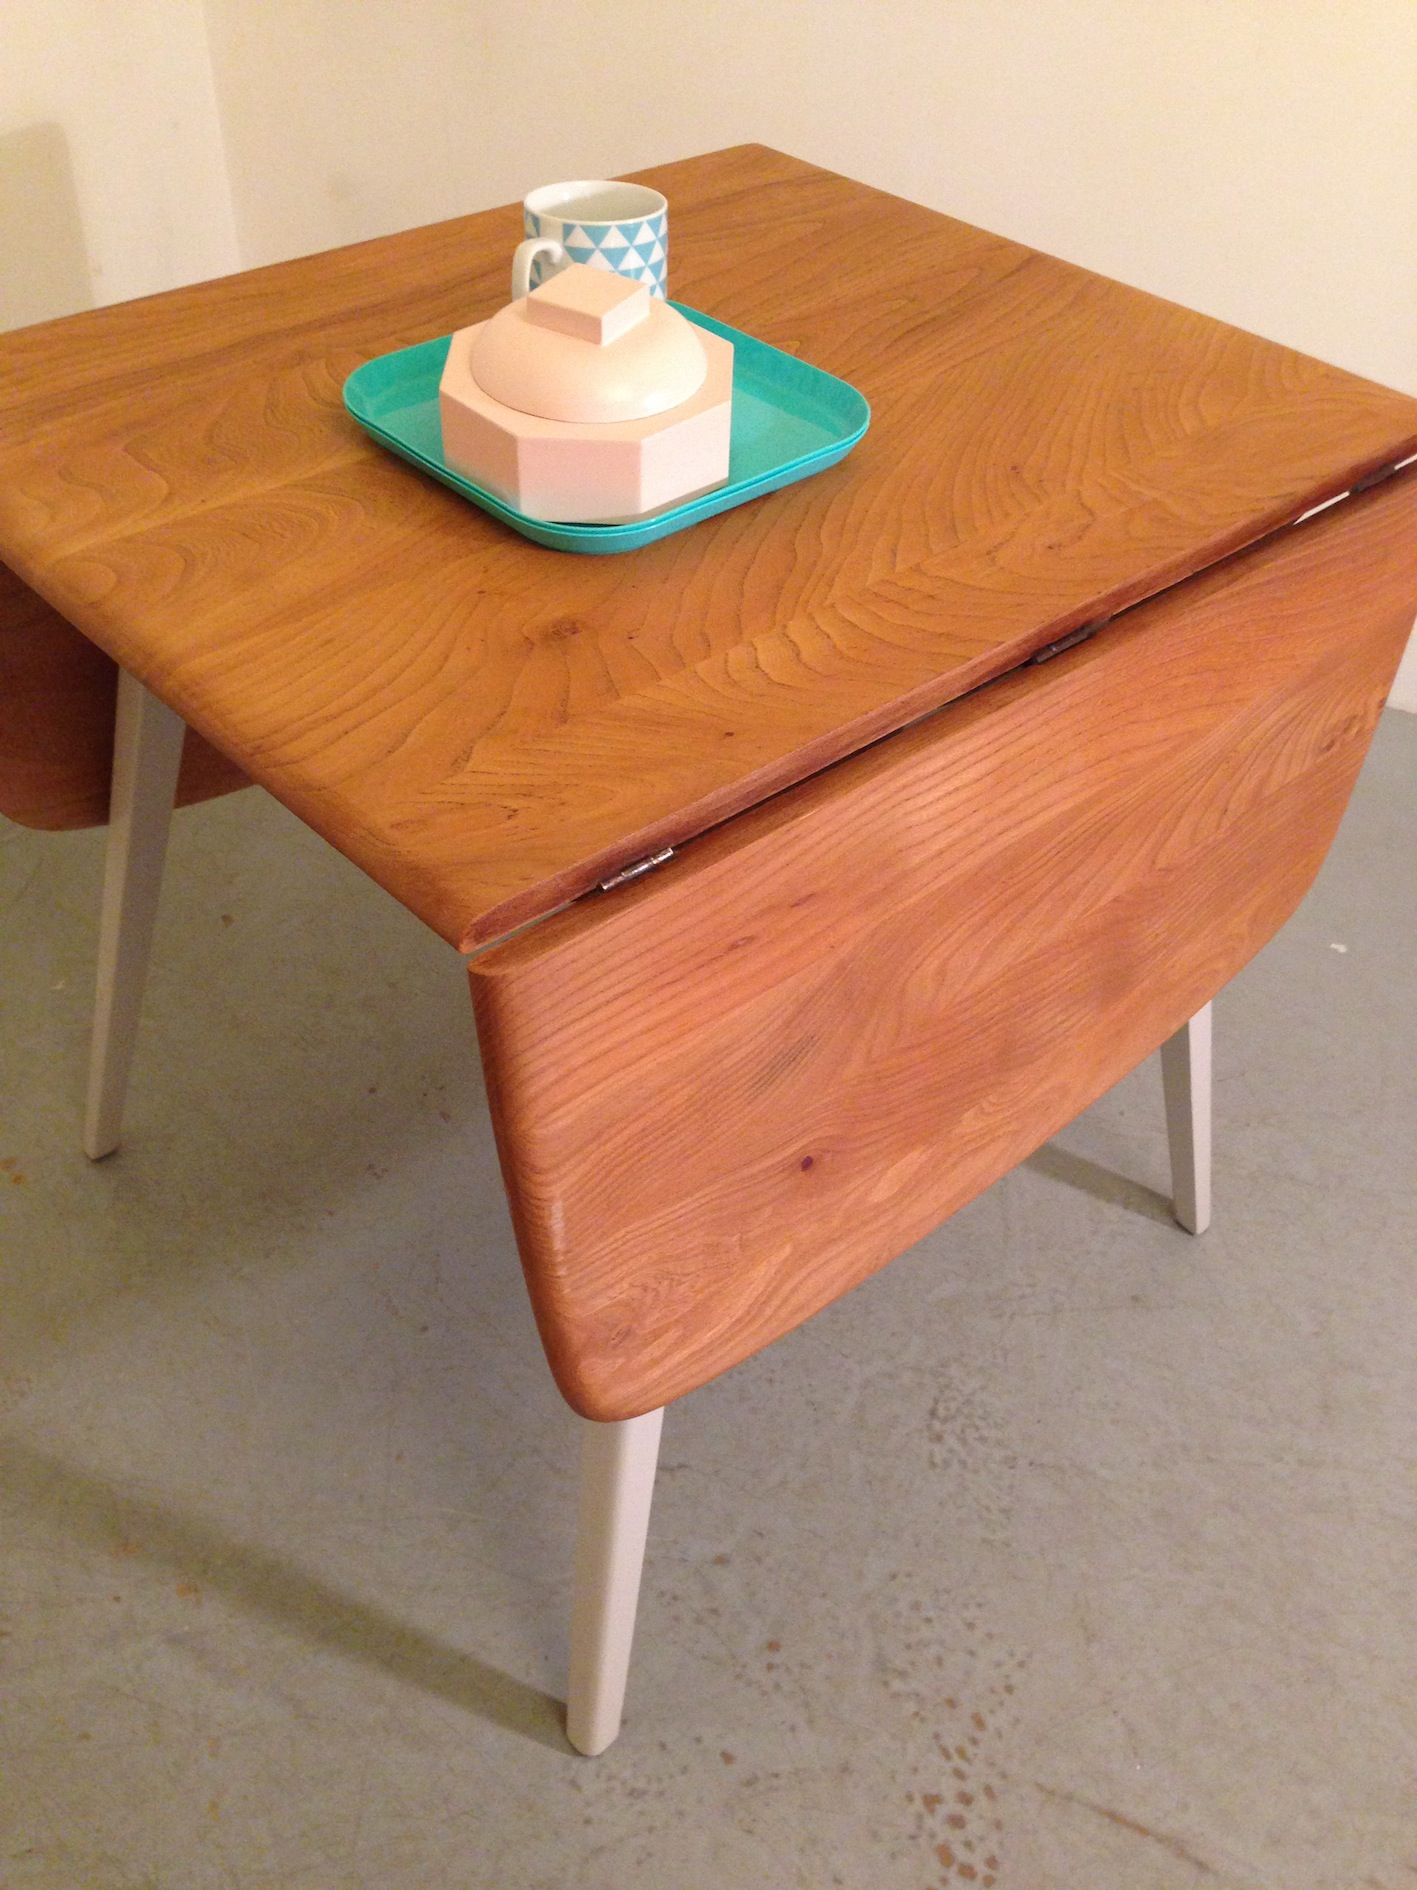 Petite Table A Rallonge Maison Design